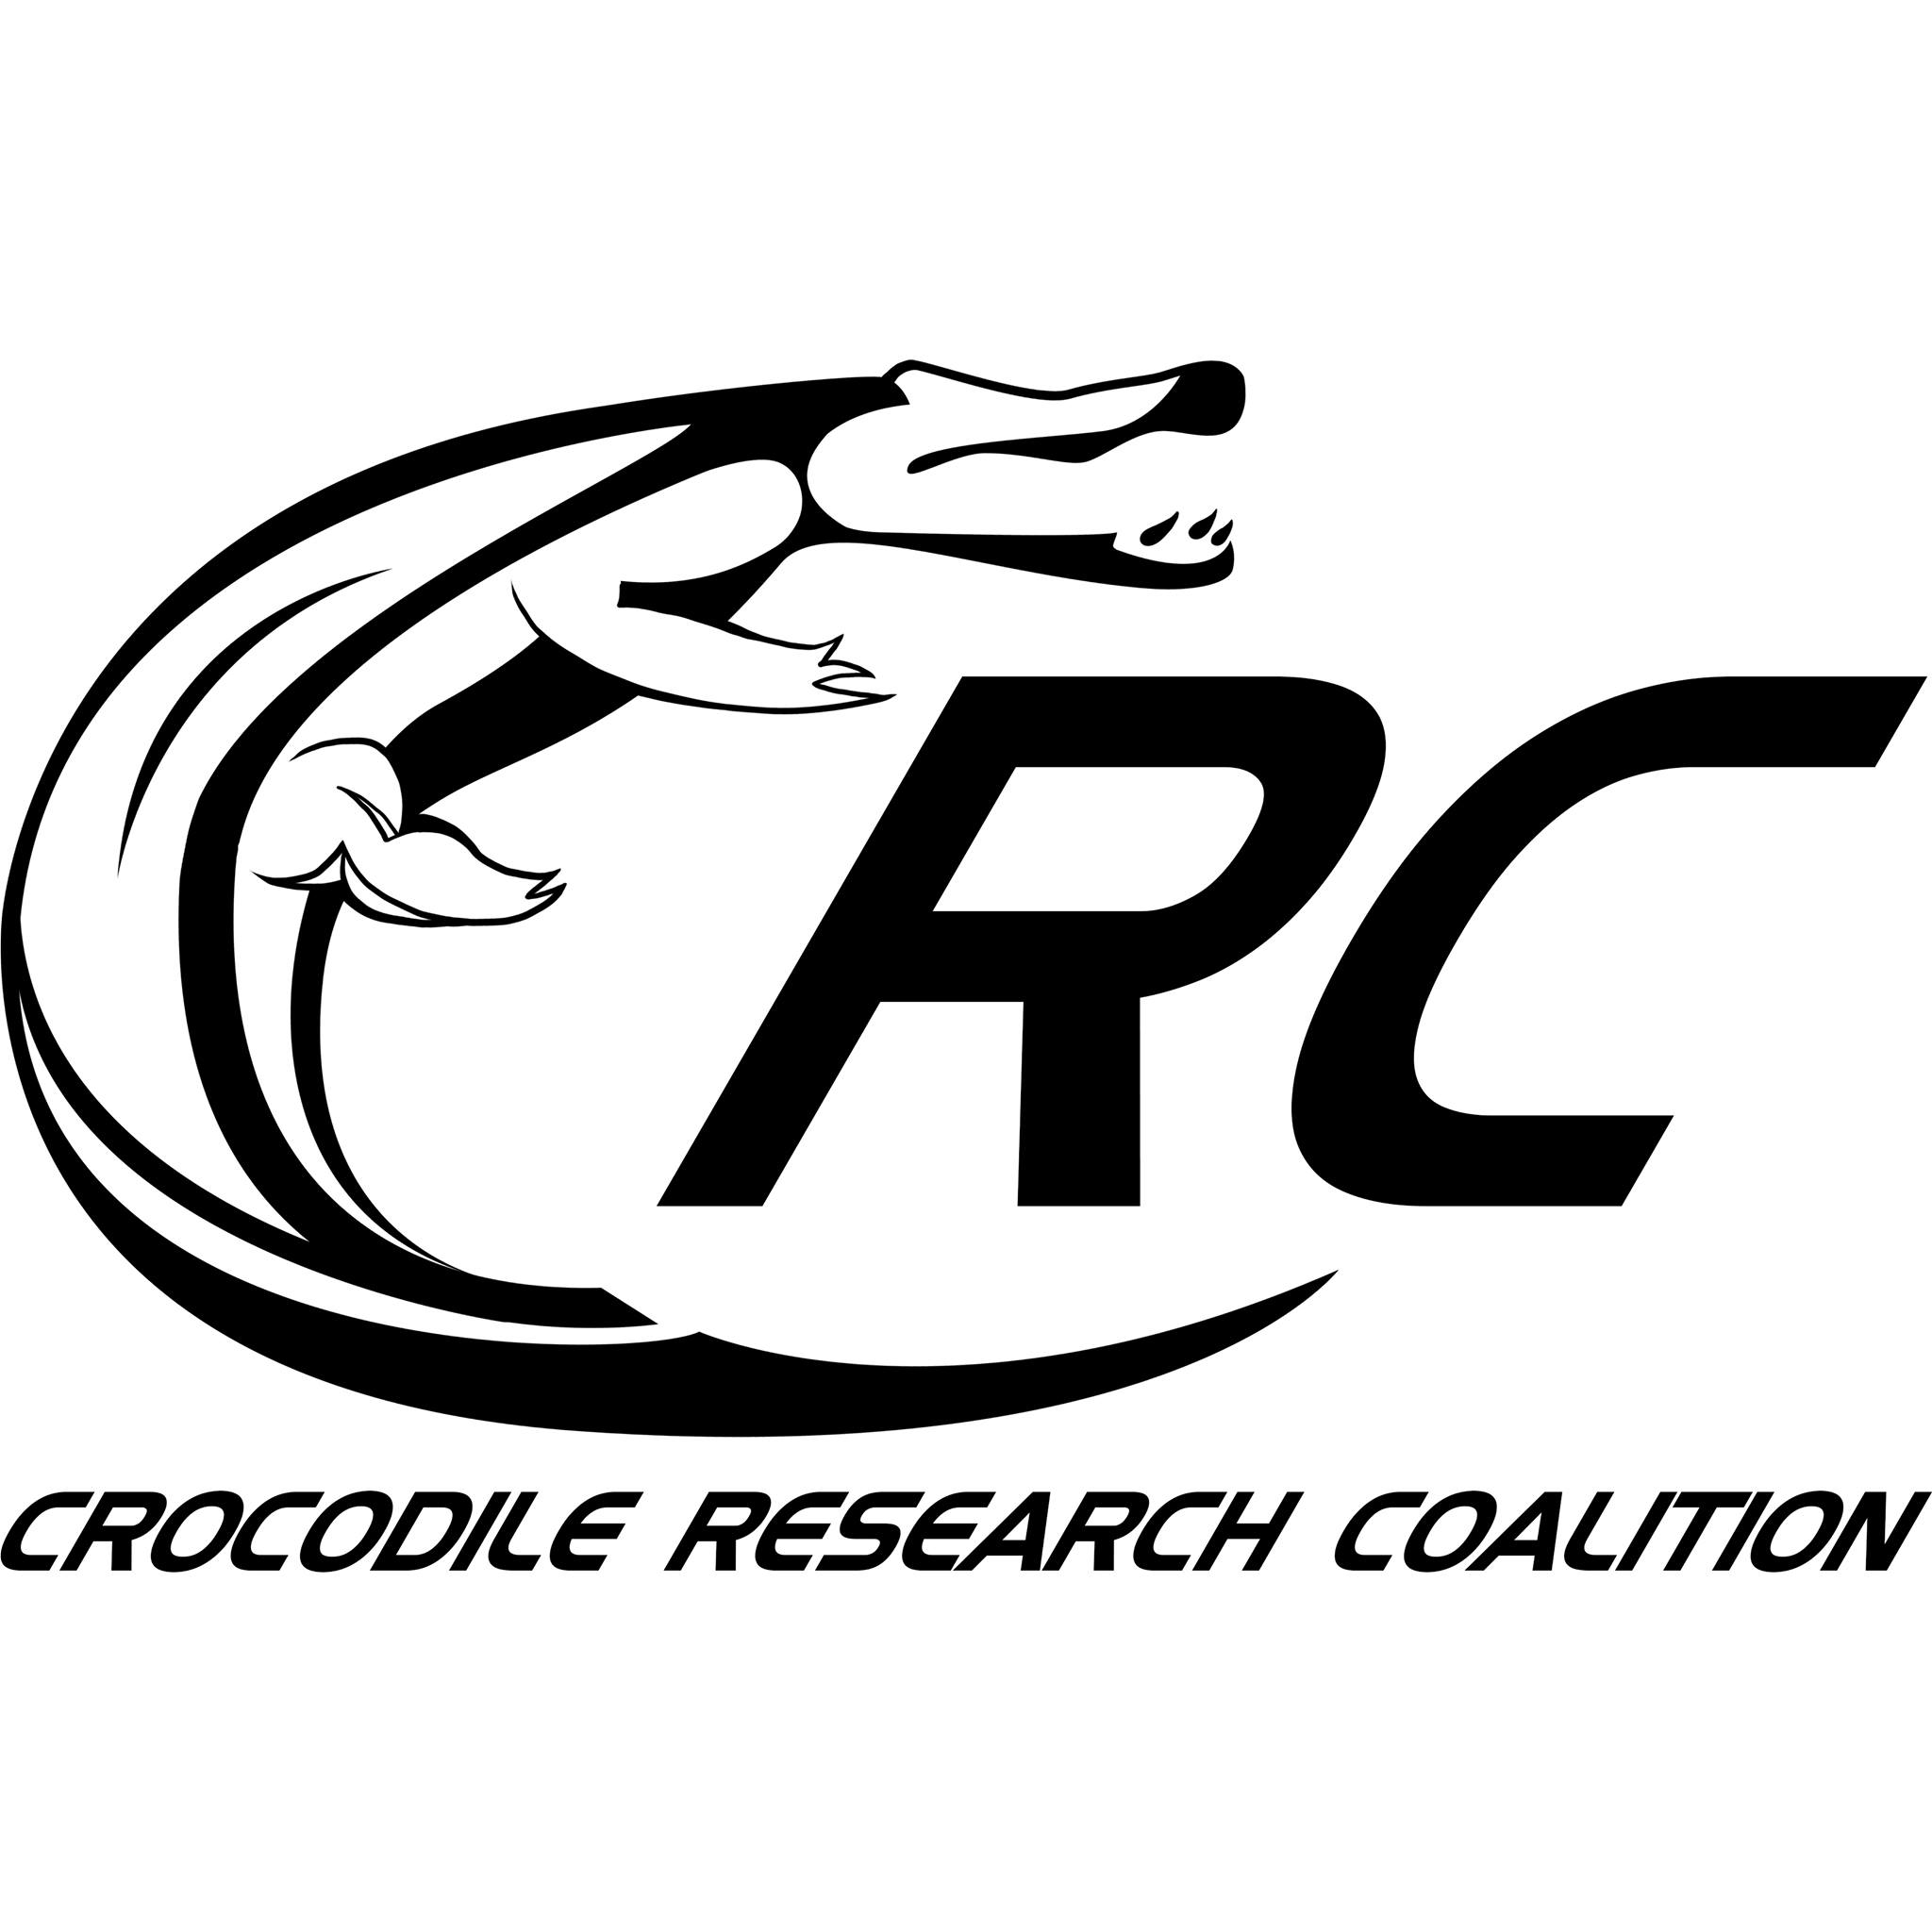 Crocodile Research Coalition